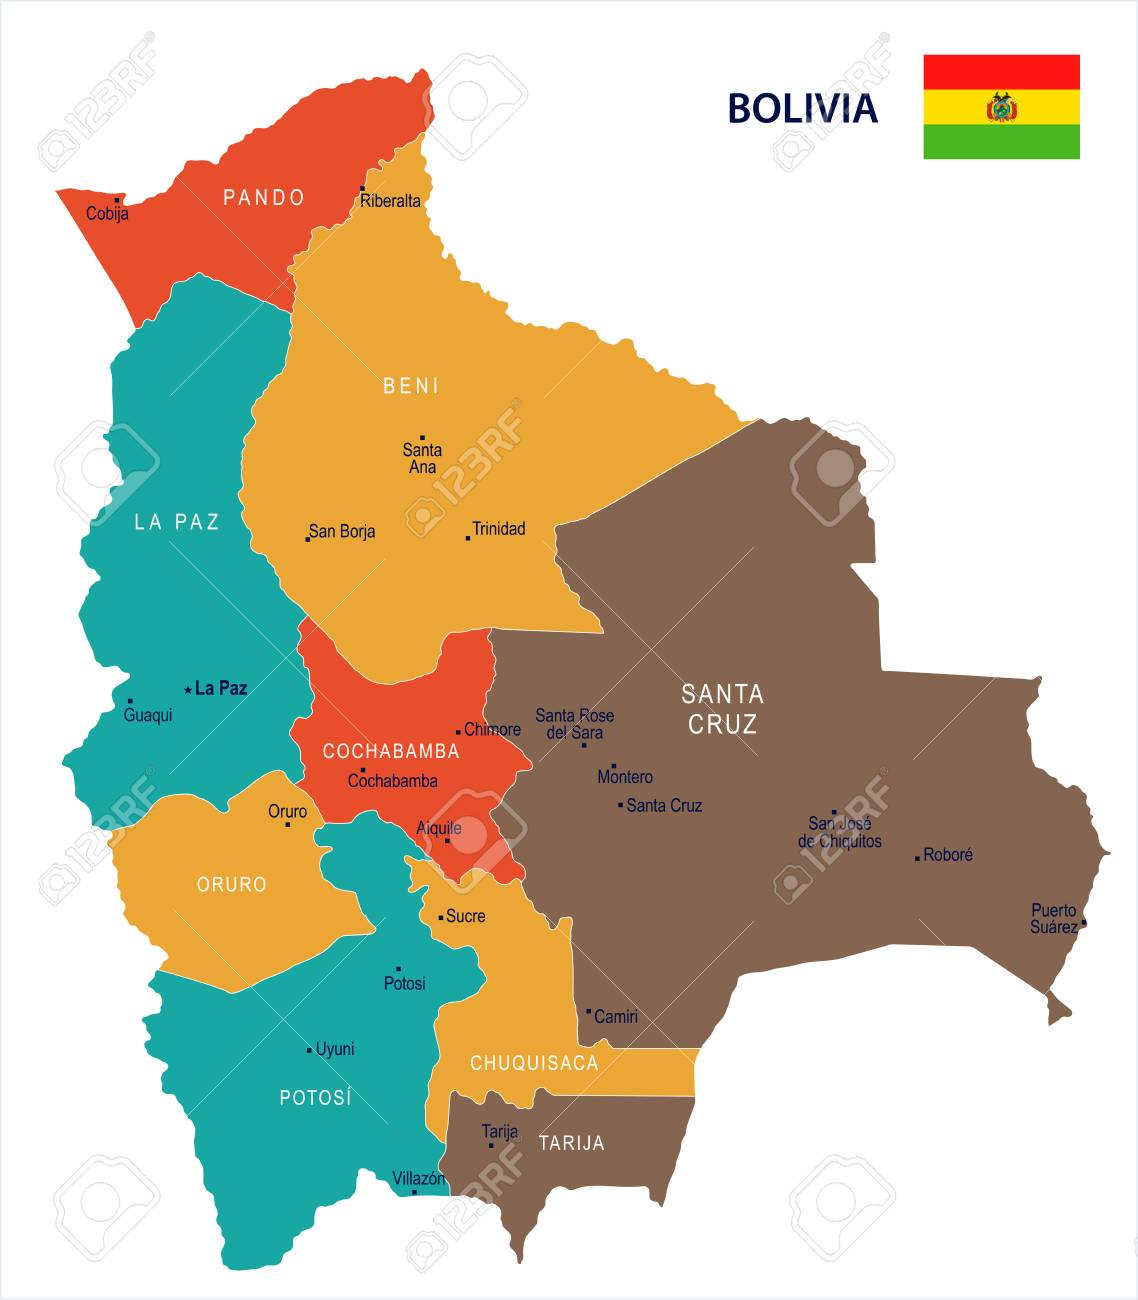 Bolivia map and flag - High Detailed Vector Illustration. on peru map, colombia map, antigua map, croatia map, algeria map, eritrea map, americas map, angola map, la paz map, mexico map, cameroon map, tahiti map, argentina map, buenos aires map, czech republic map, bosnia map, uae map, canada map, ecuador map, cuba map, brazil map, aruba map, egypt map, el salvador map, oman map, world map, chile map, japan map, andes mountains map, austria map, benin map, trinidad map, china map, spain map, bulgaria map,